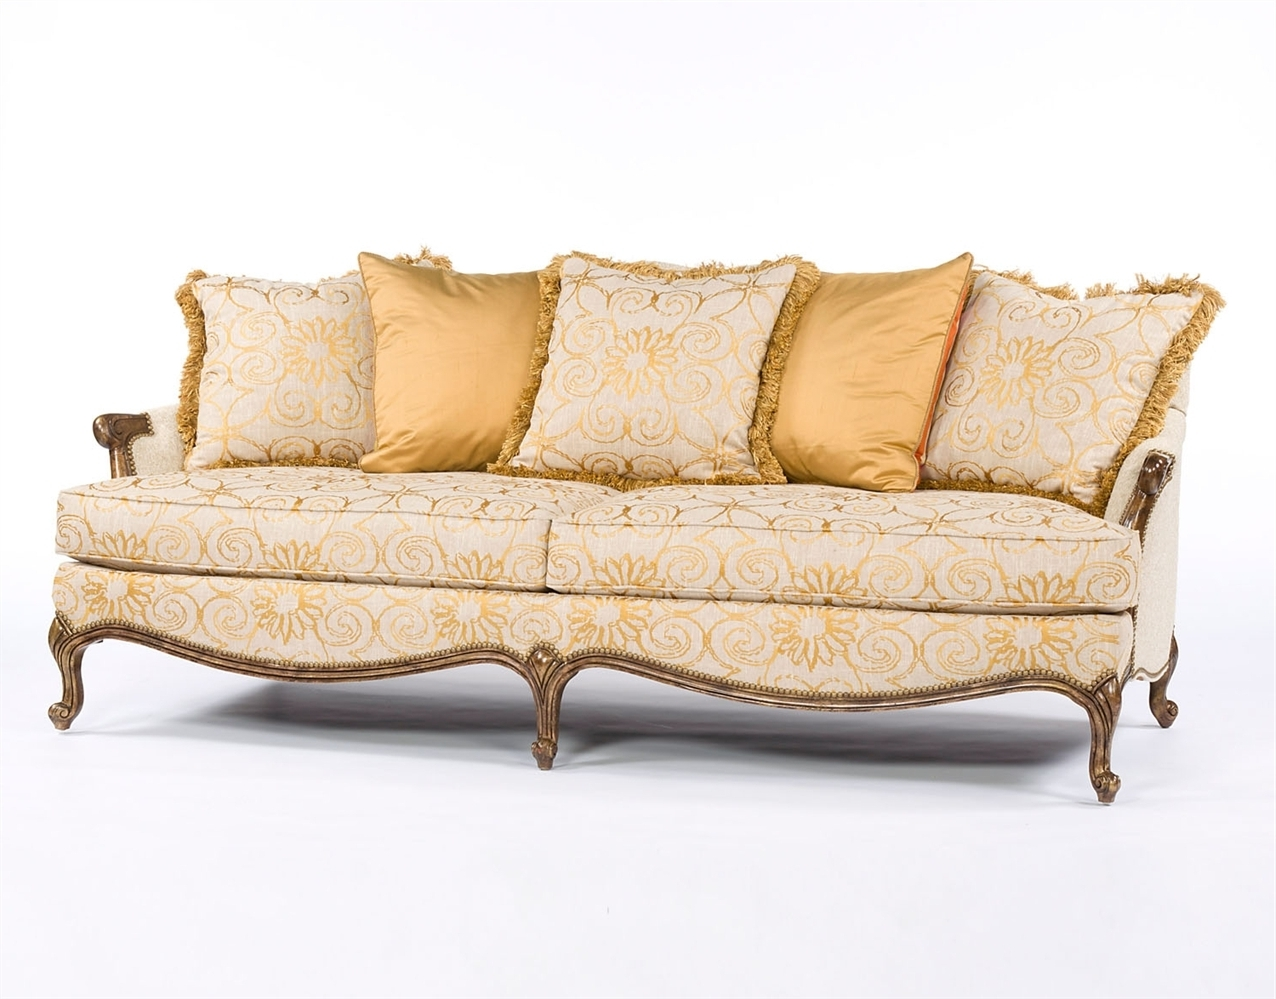 Mod Fabric French Style Sofa In 2018 French Style Sofas (View 4 of 20)